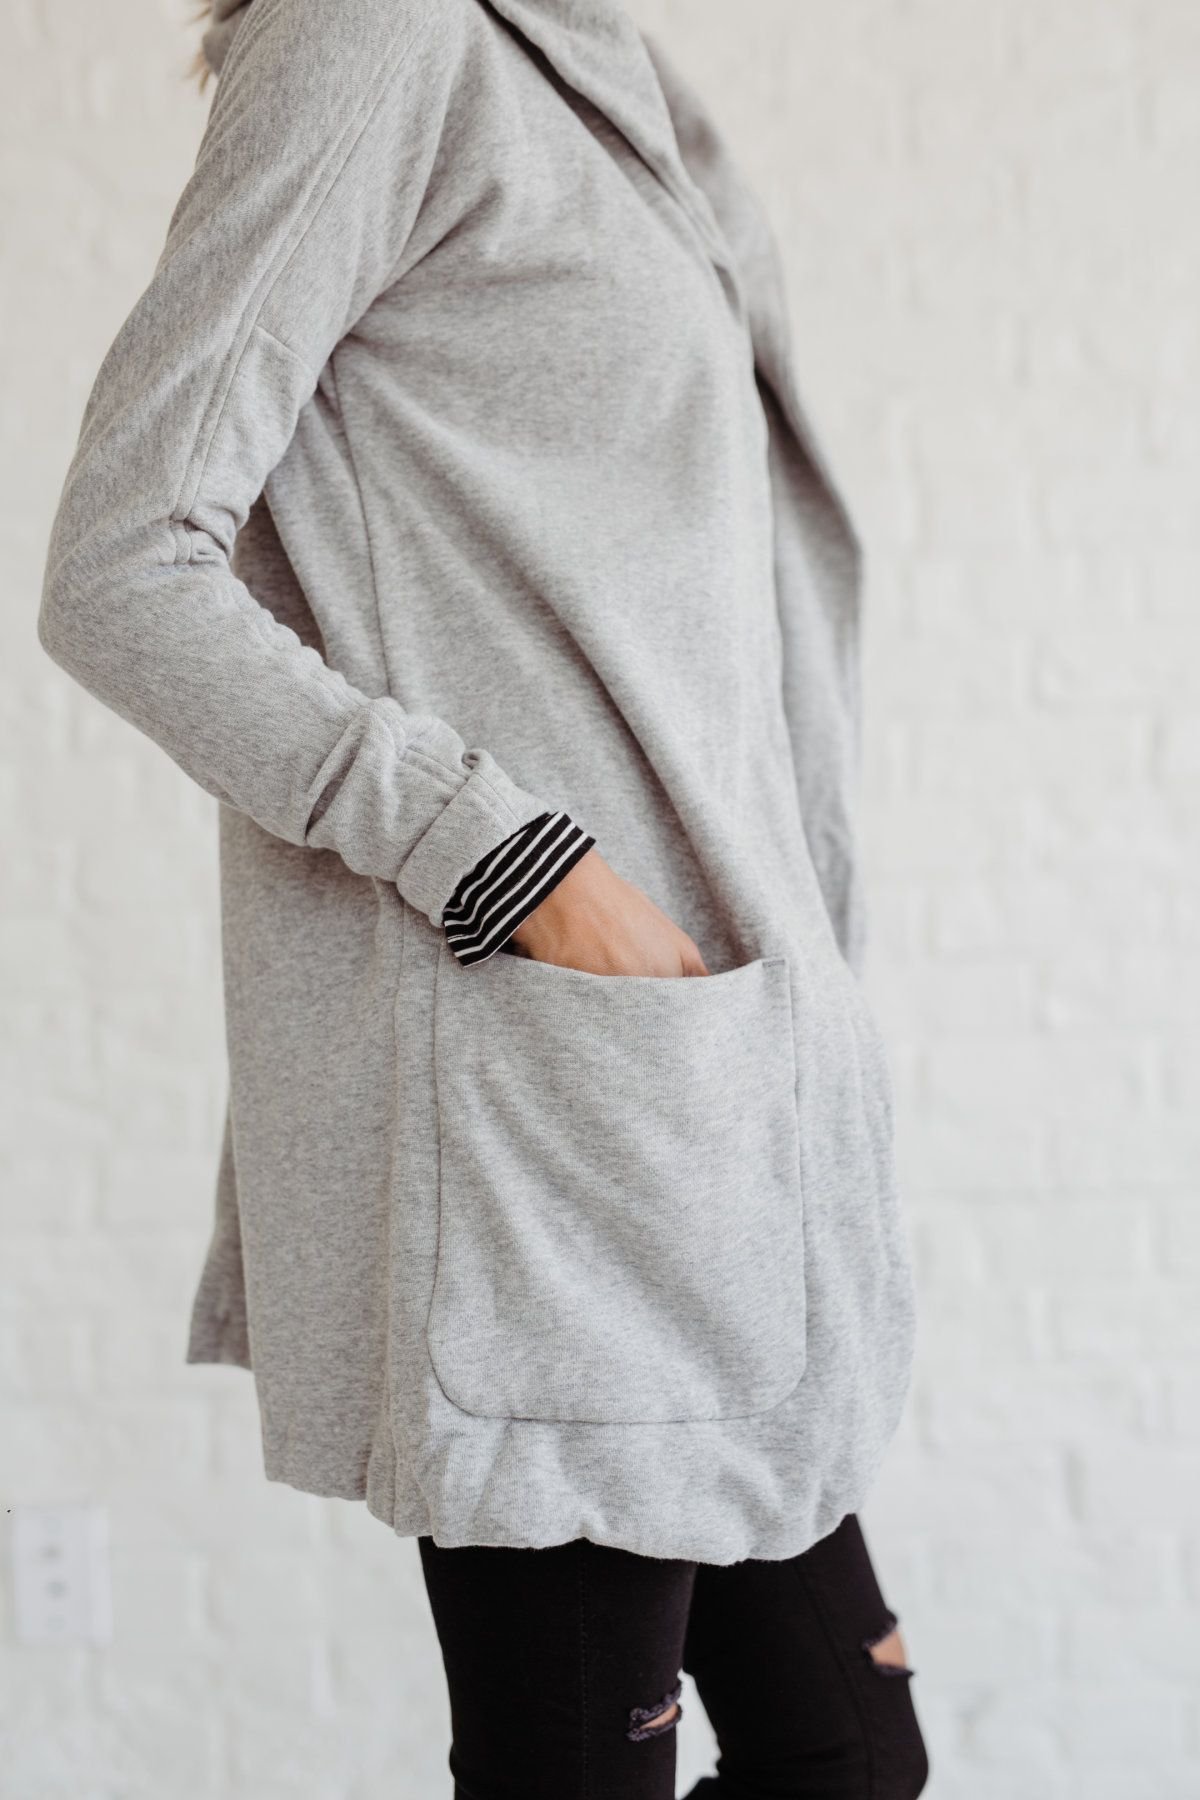 Thick Hooded Sweater | Hooded sweater and Stylish